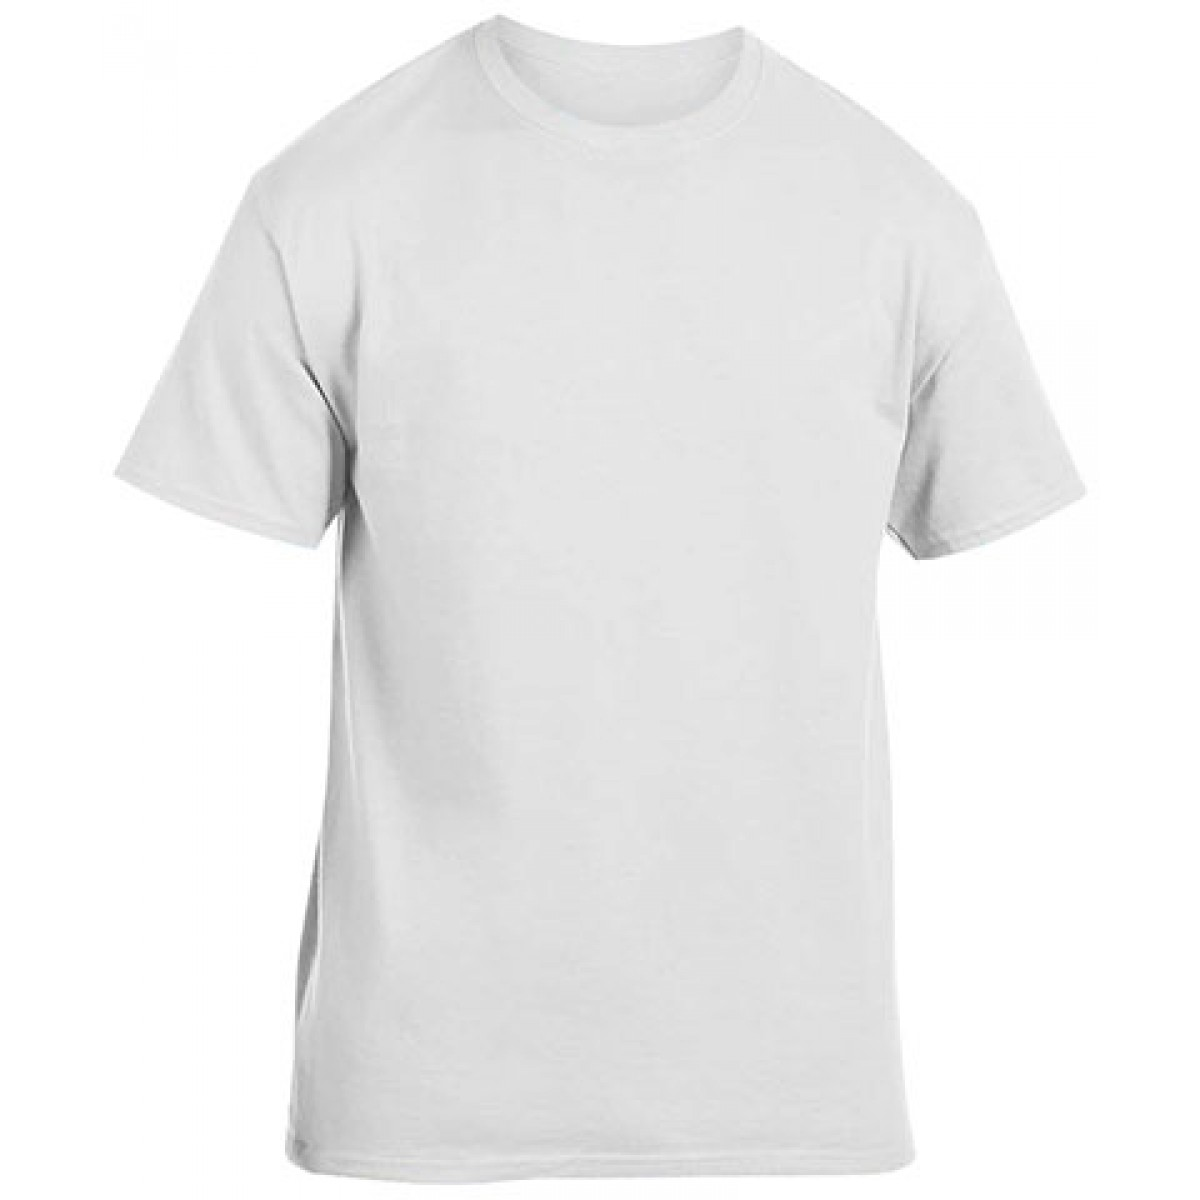 Cotton Short Sleeve T-Shirt-White-XL